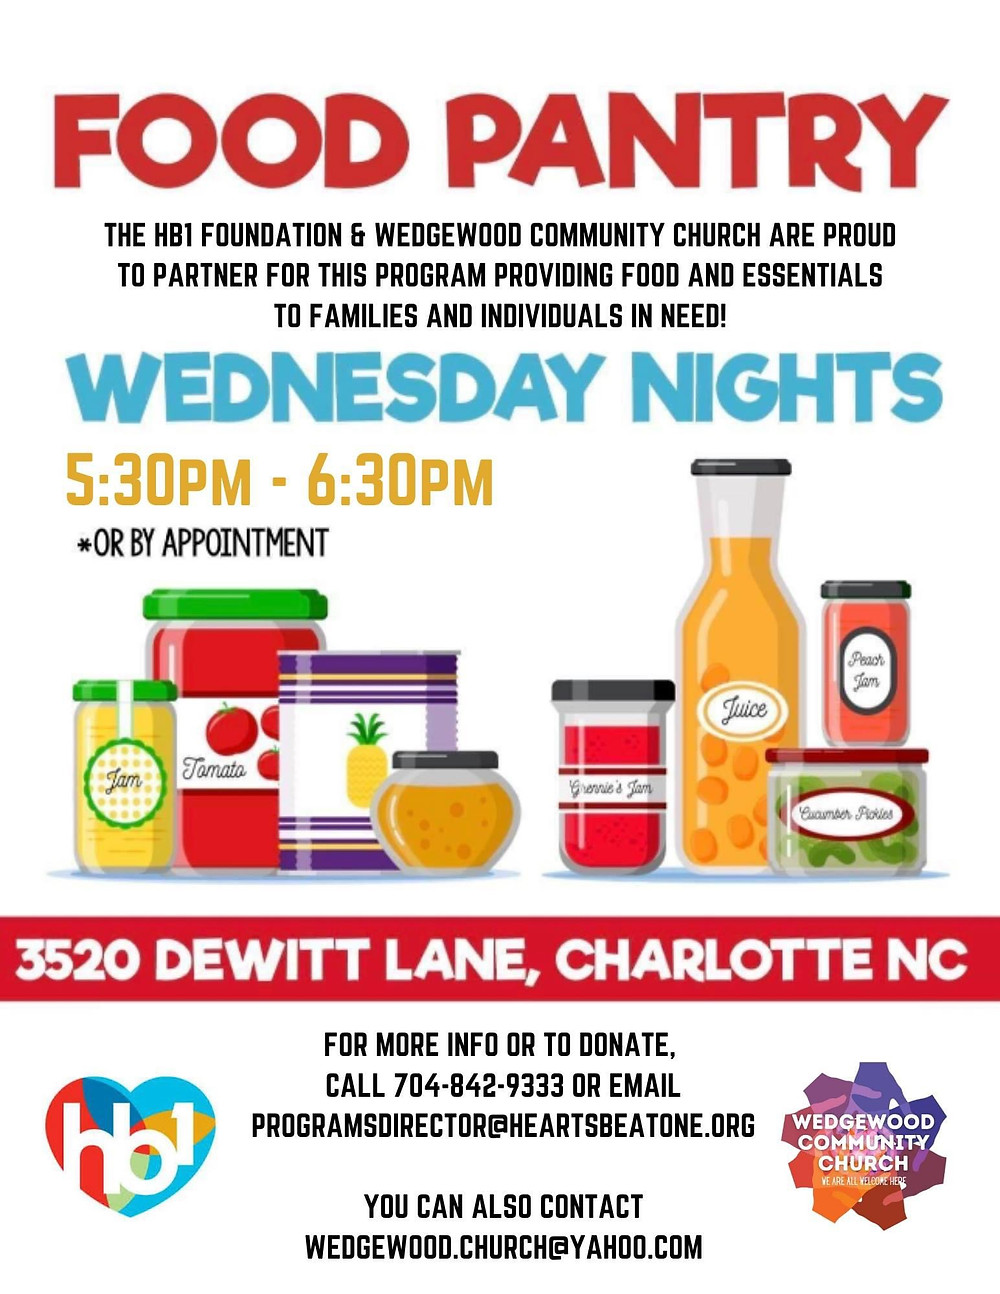 Charlotte-Mecklenburg Food Pantry HB1 Foundation, Wedgewood Community Church